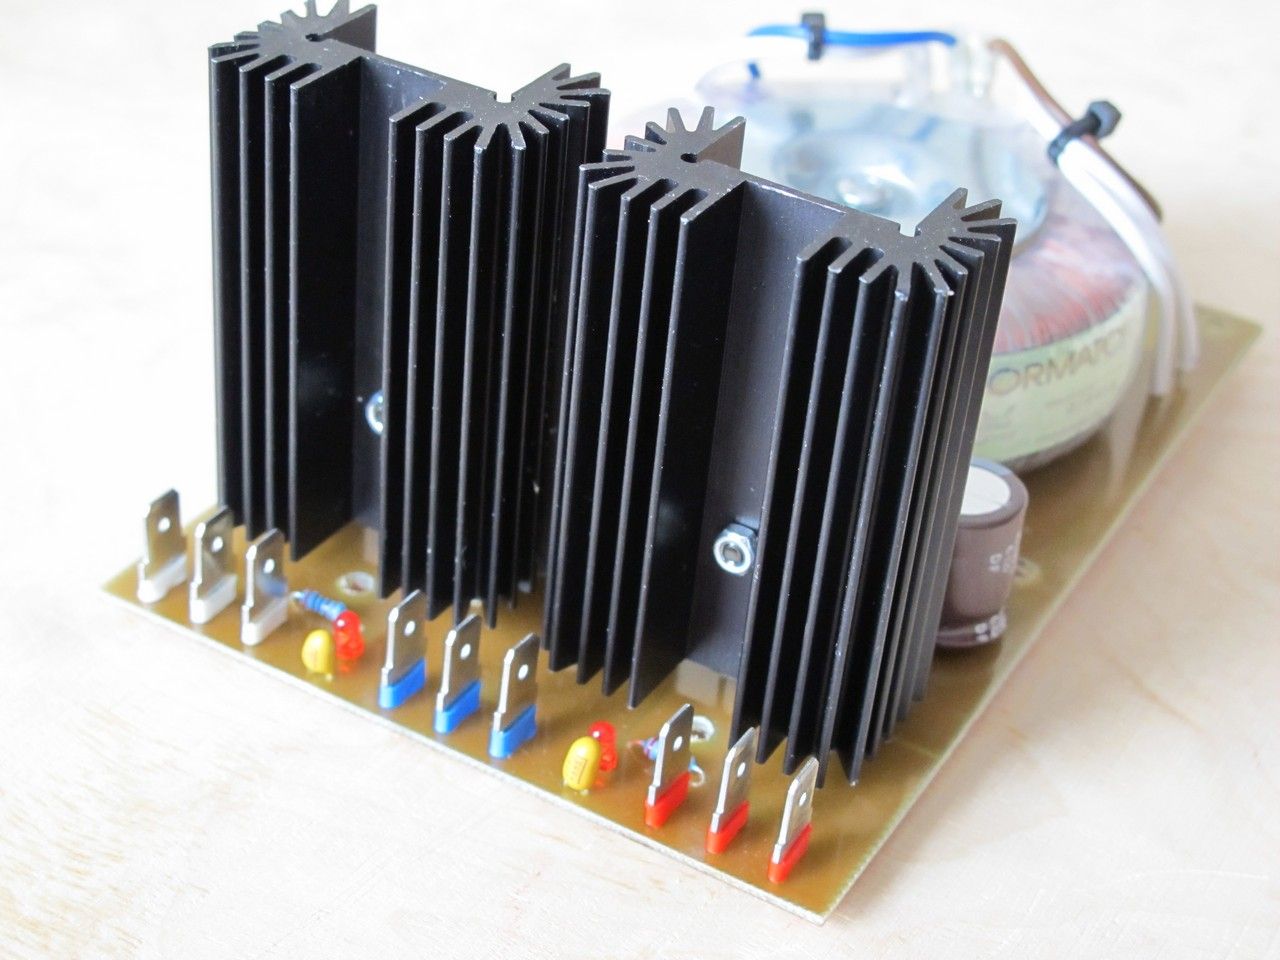 Modular synth power supply - SyntherJack